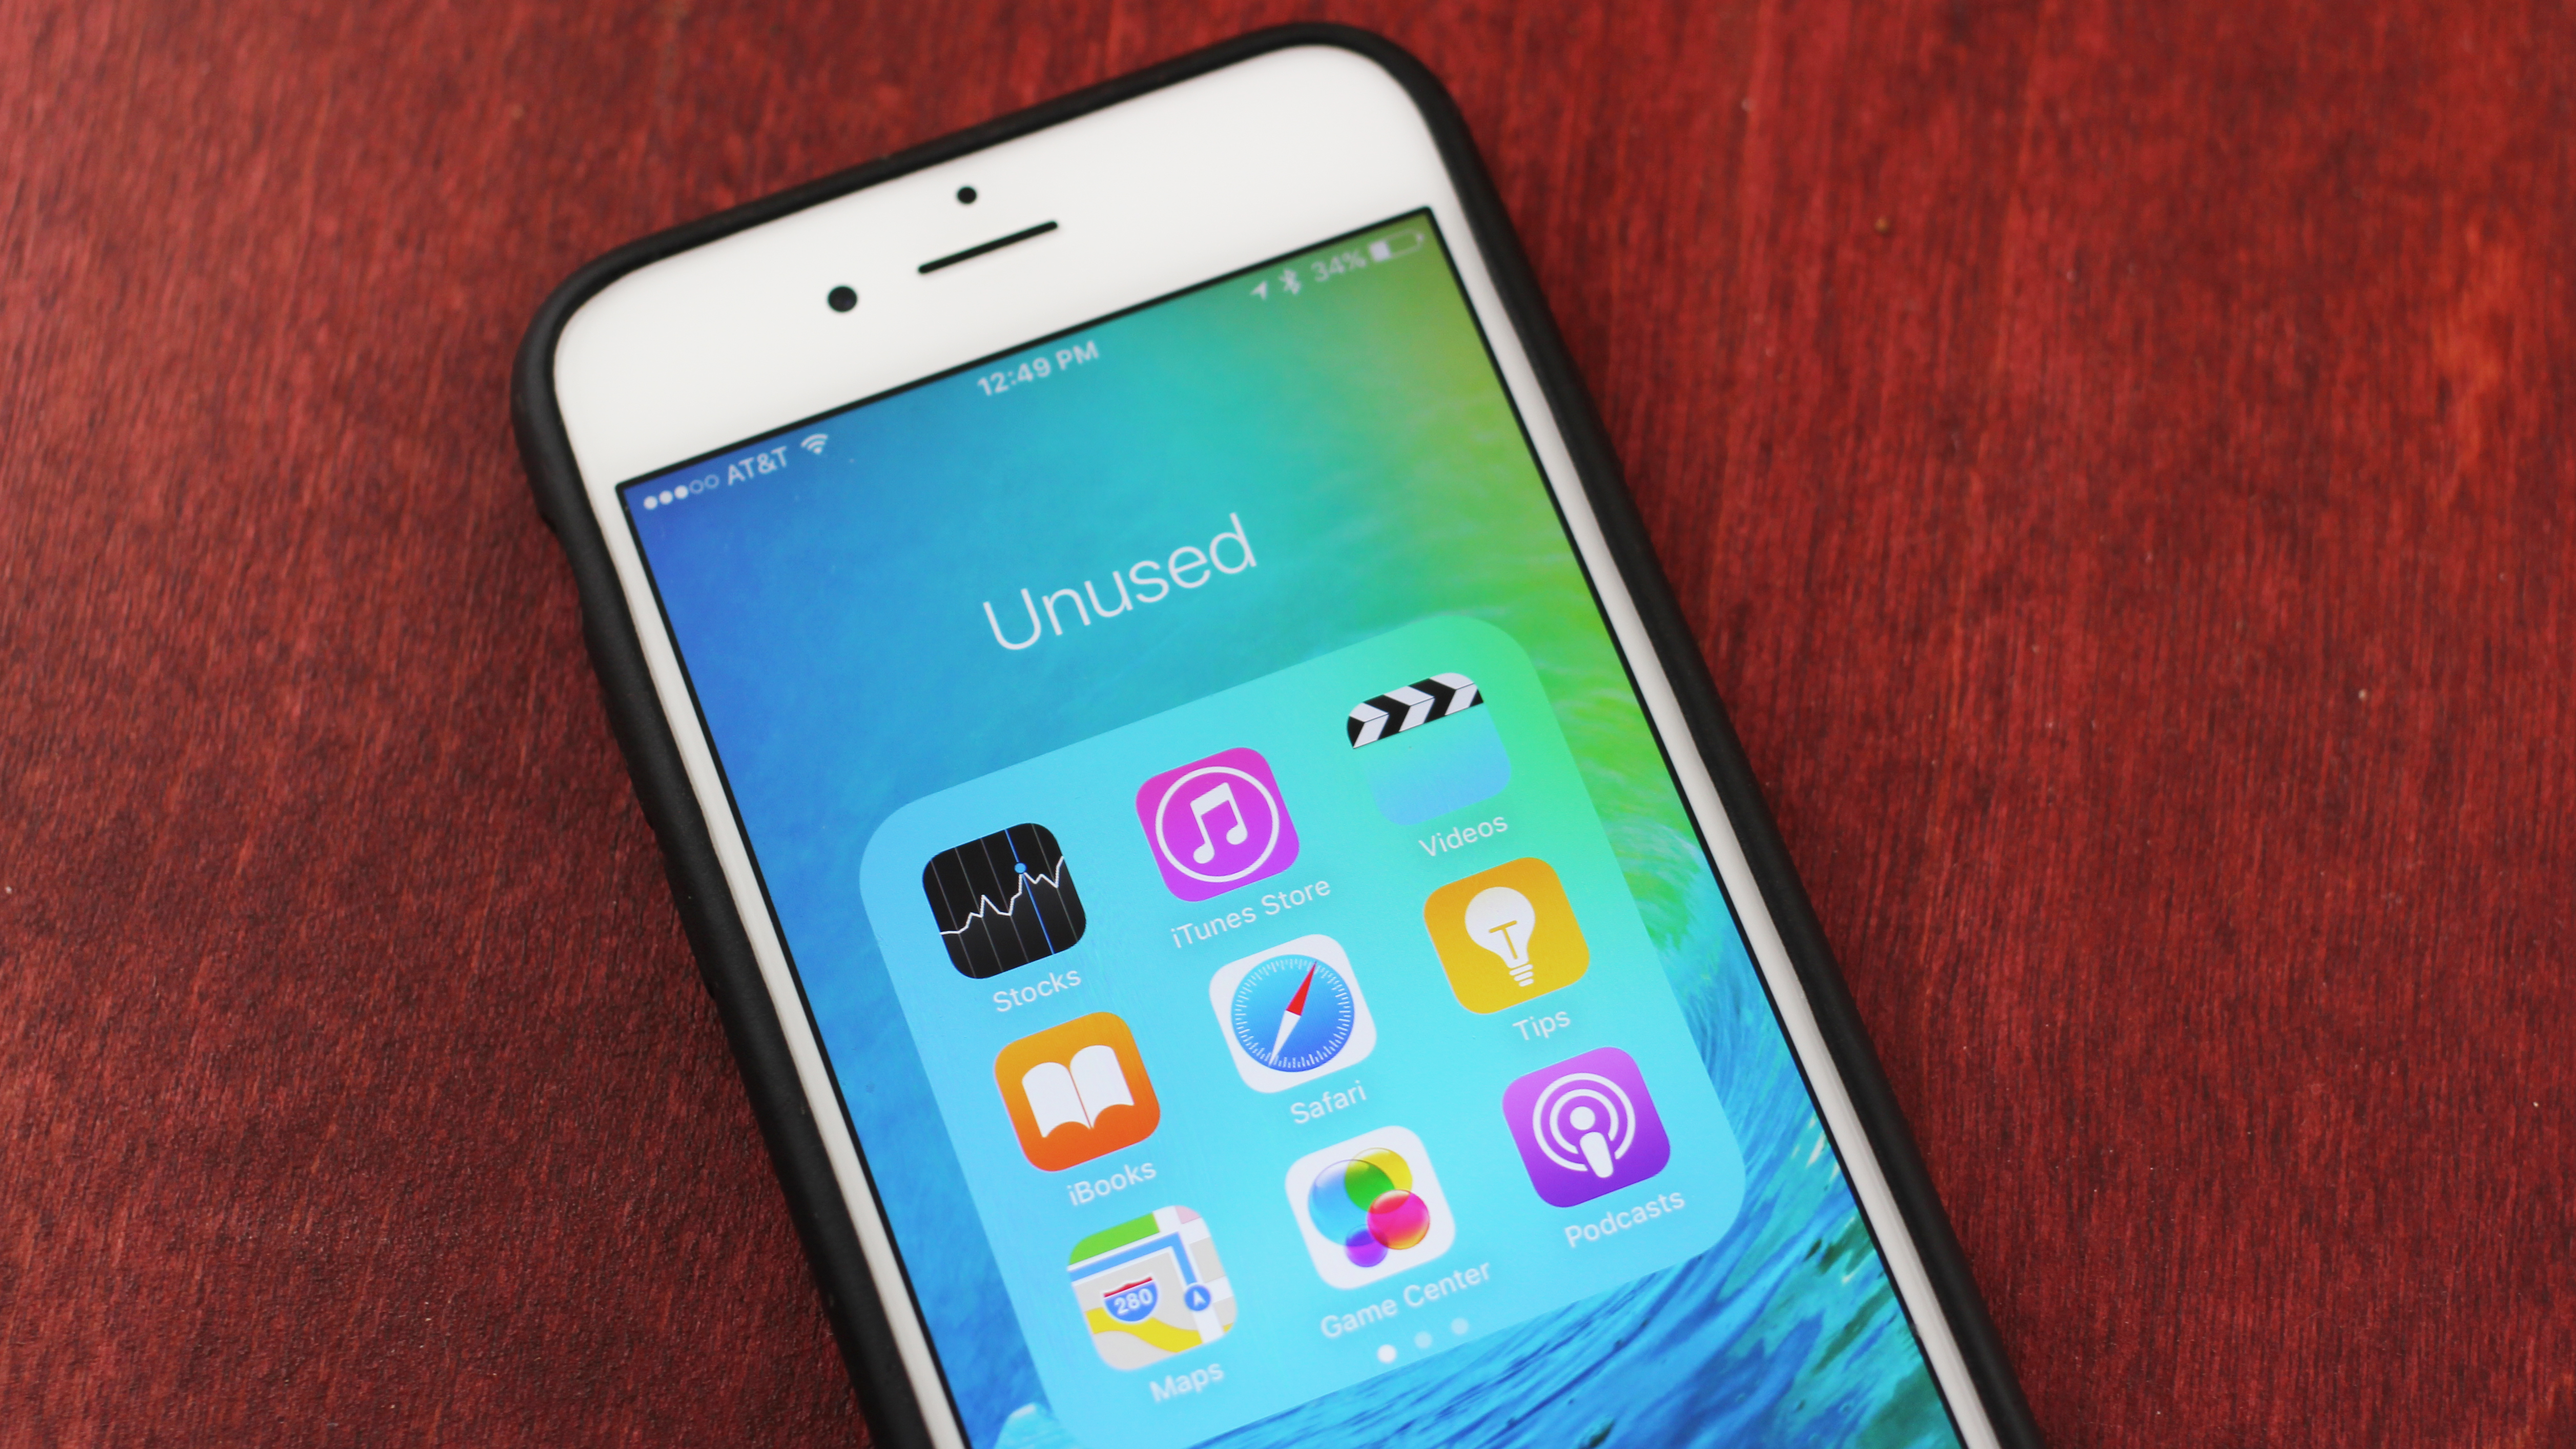 Here's why you can't uninstall Apple's pre-installed iPhone